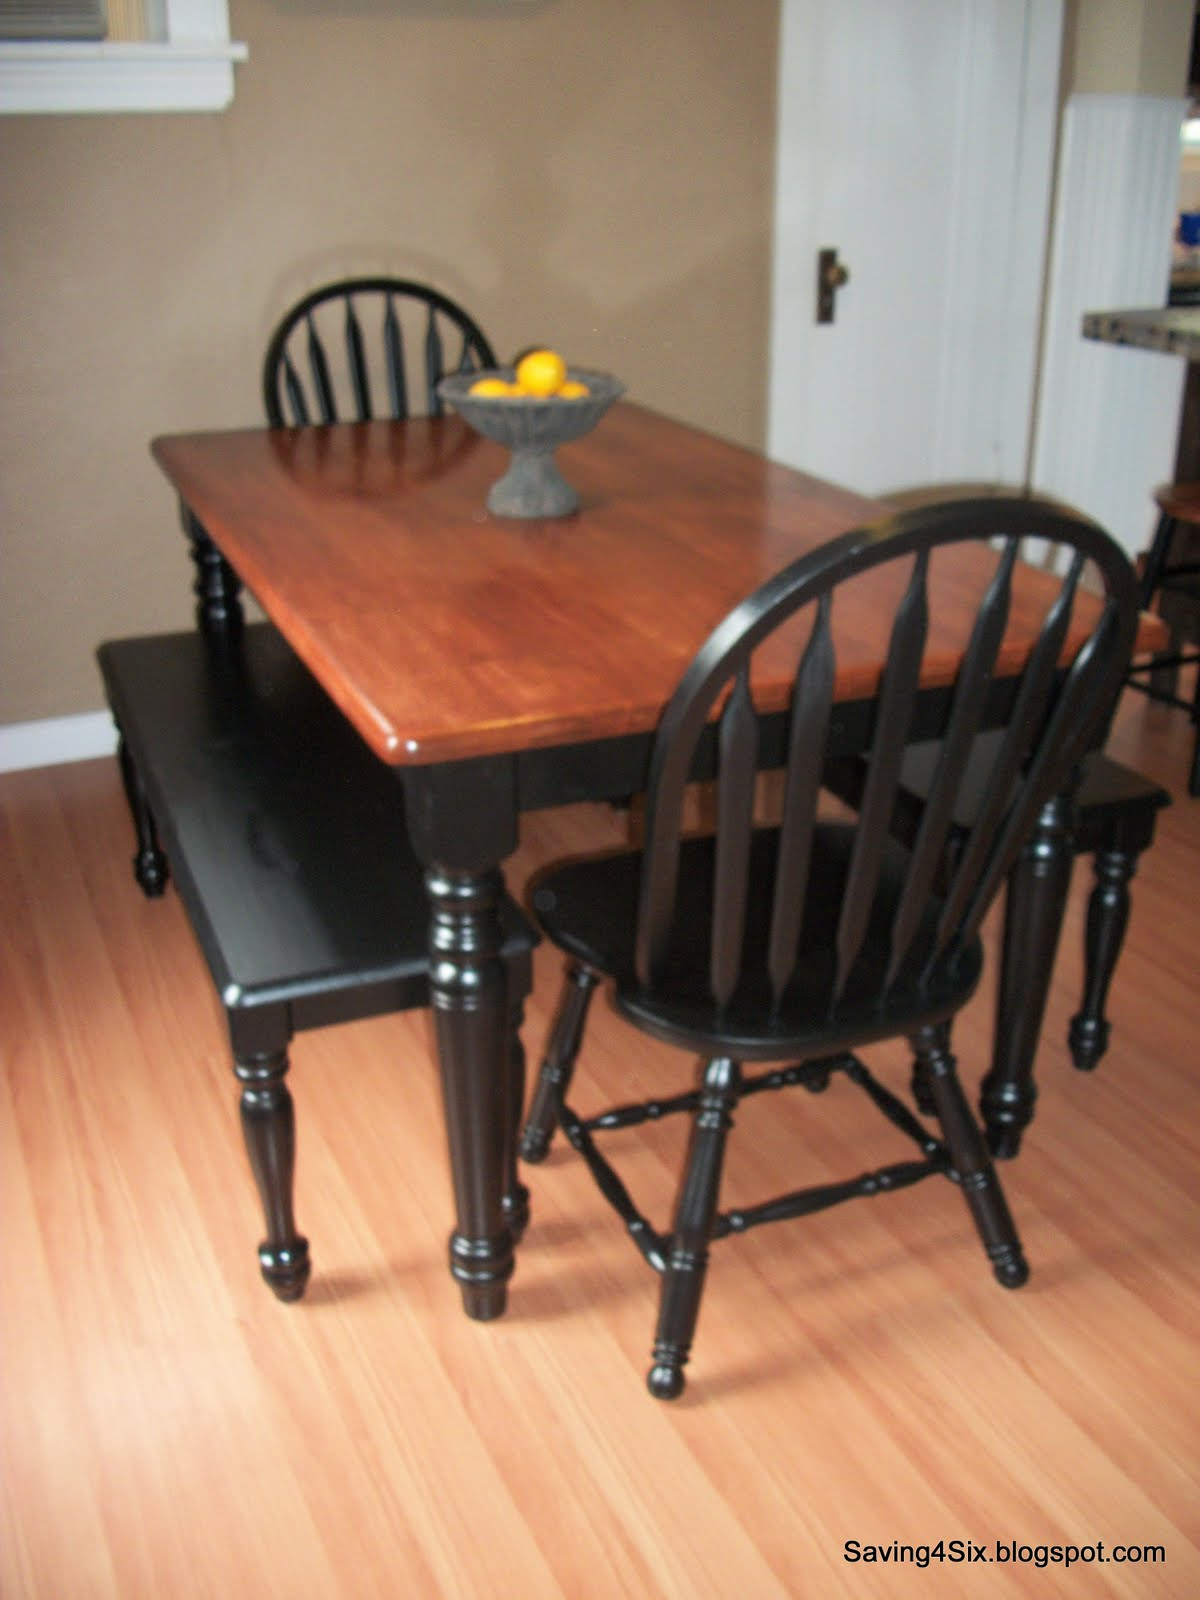 Refinishing the dining room table - Refinishing a kitchen table ...